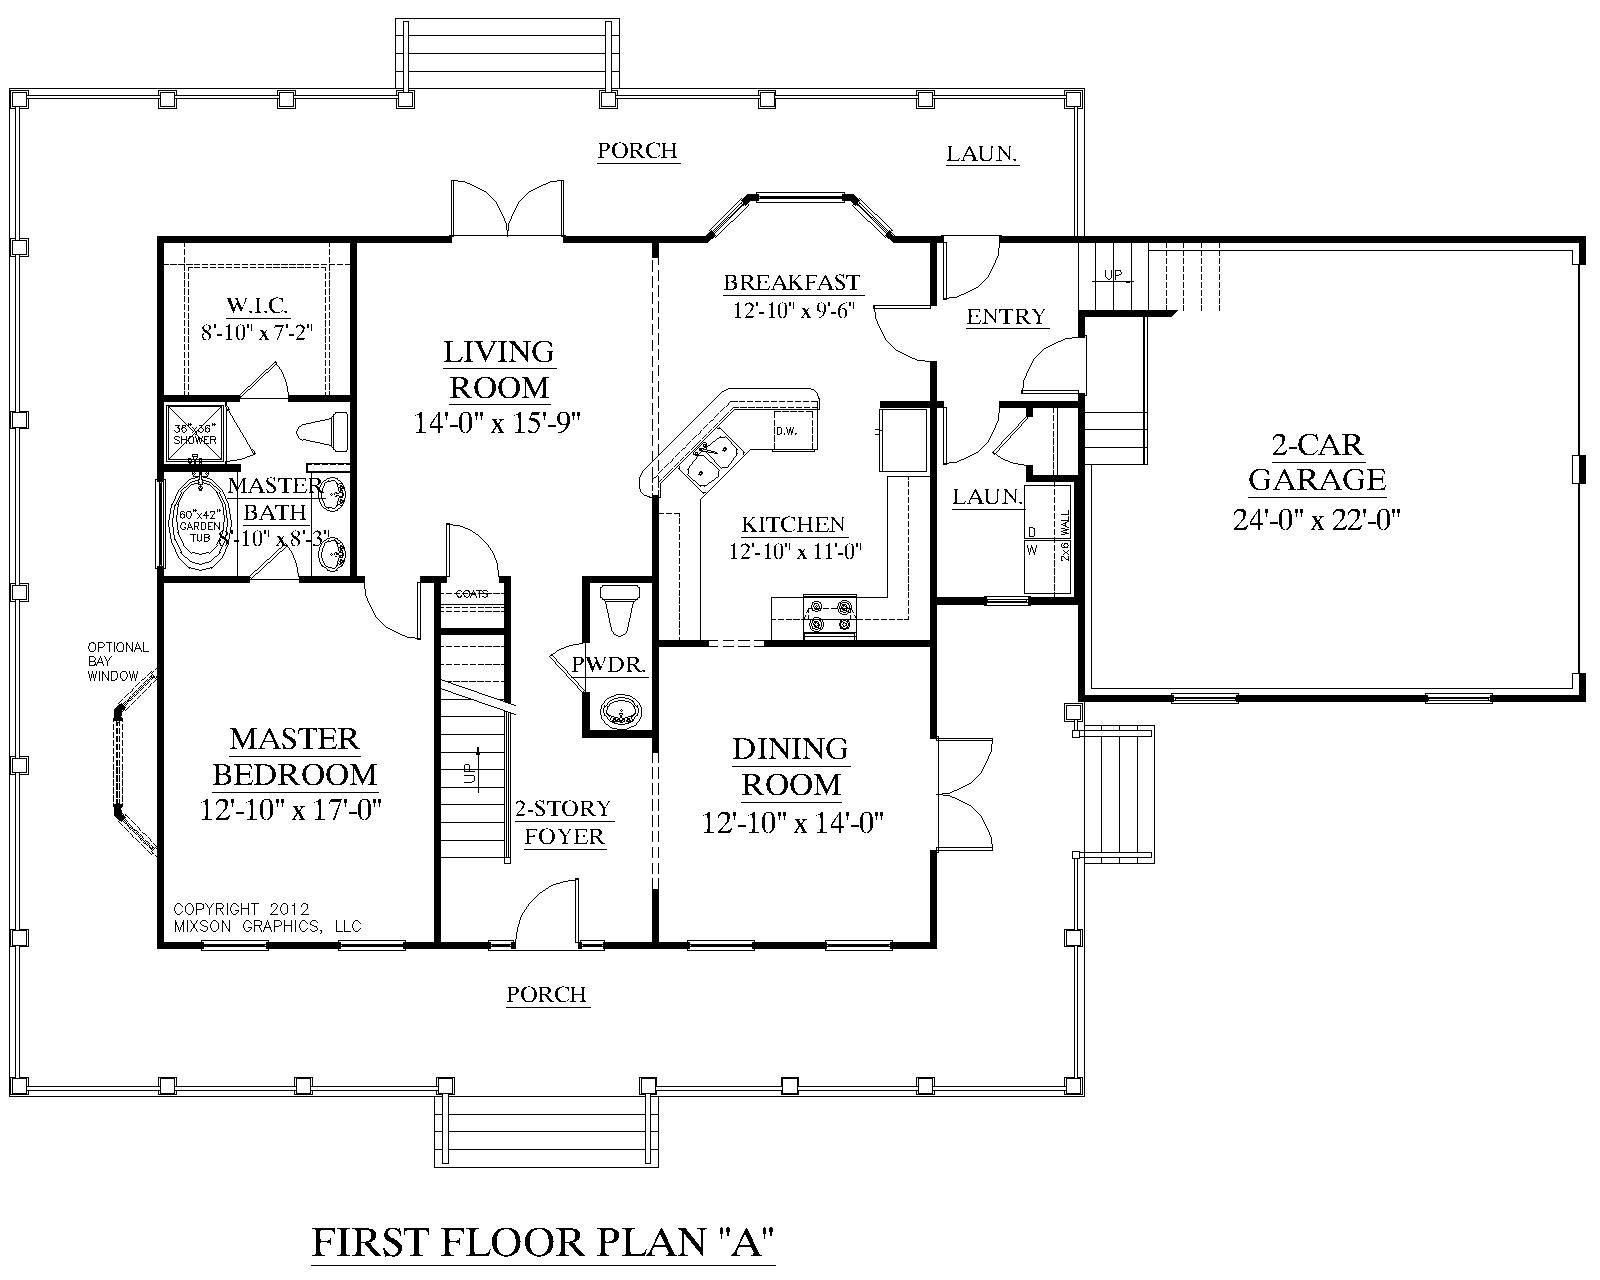 House Plan 2341 A Montgomery A First Floor Plan Traditional 1 1 2 Story House Plan With Two Story House Plans Cape Cod House Plans Four Bedroom House Plans